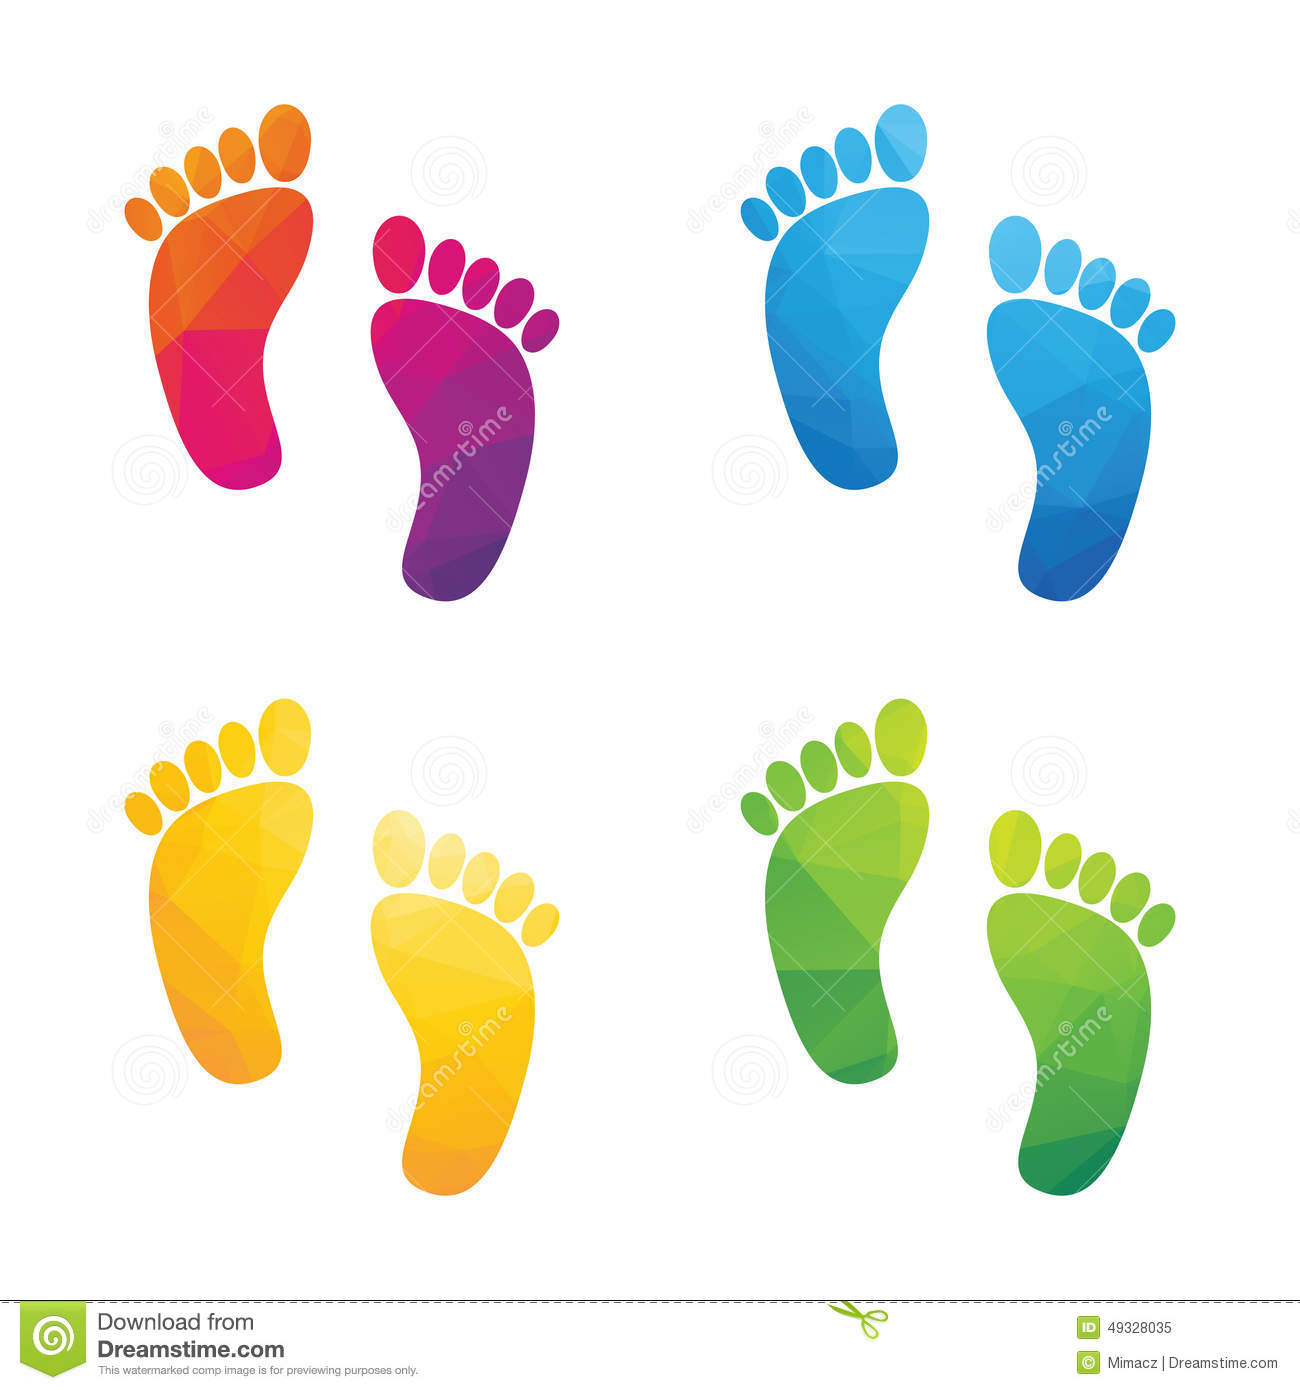 colorful human footprints stock vector illustration of free footprint clipart black and white free footprint clipart downloads